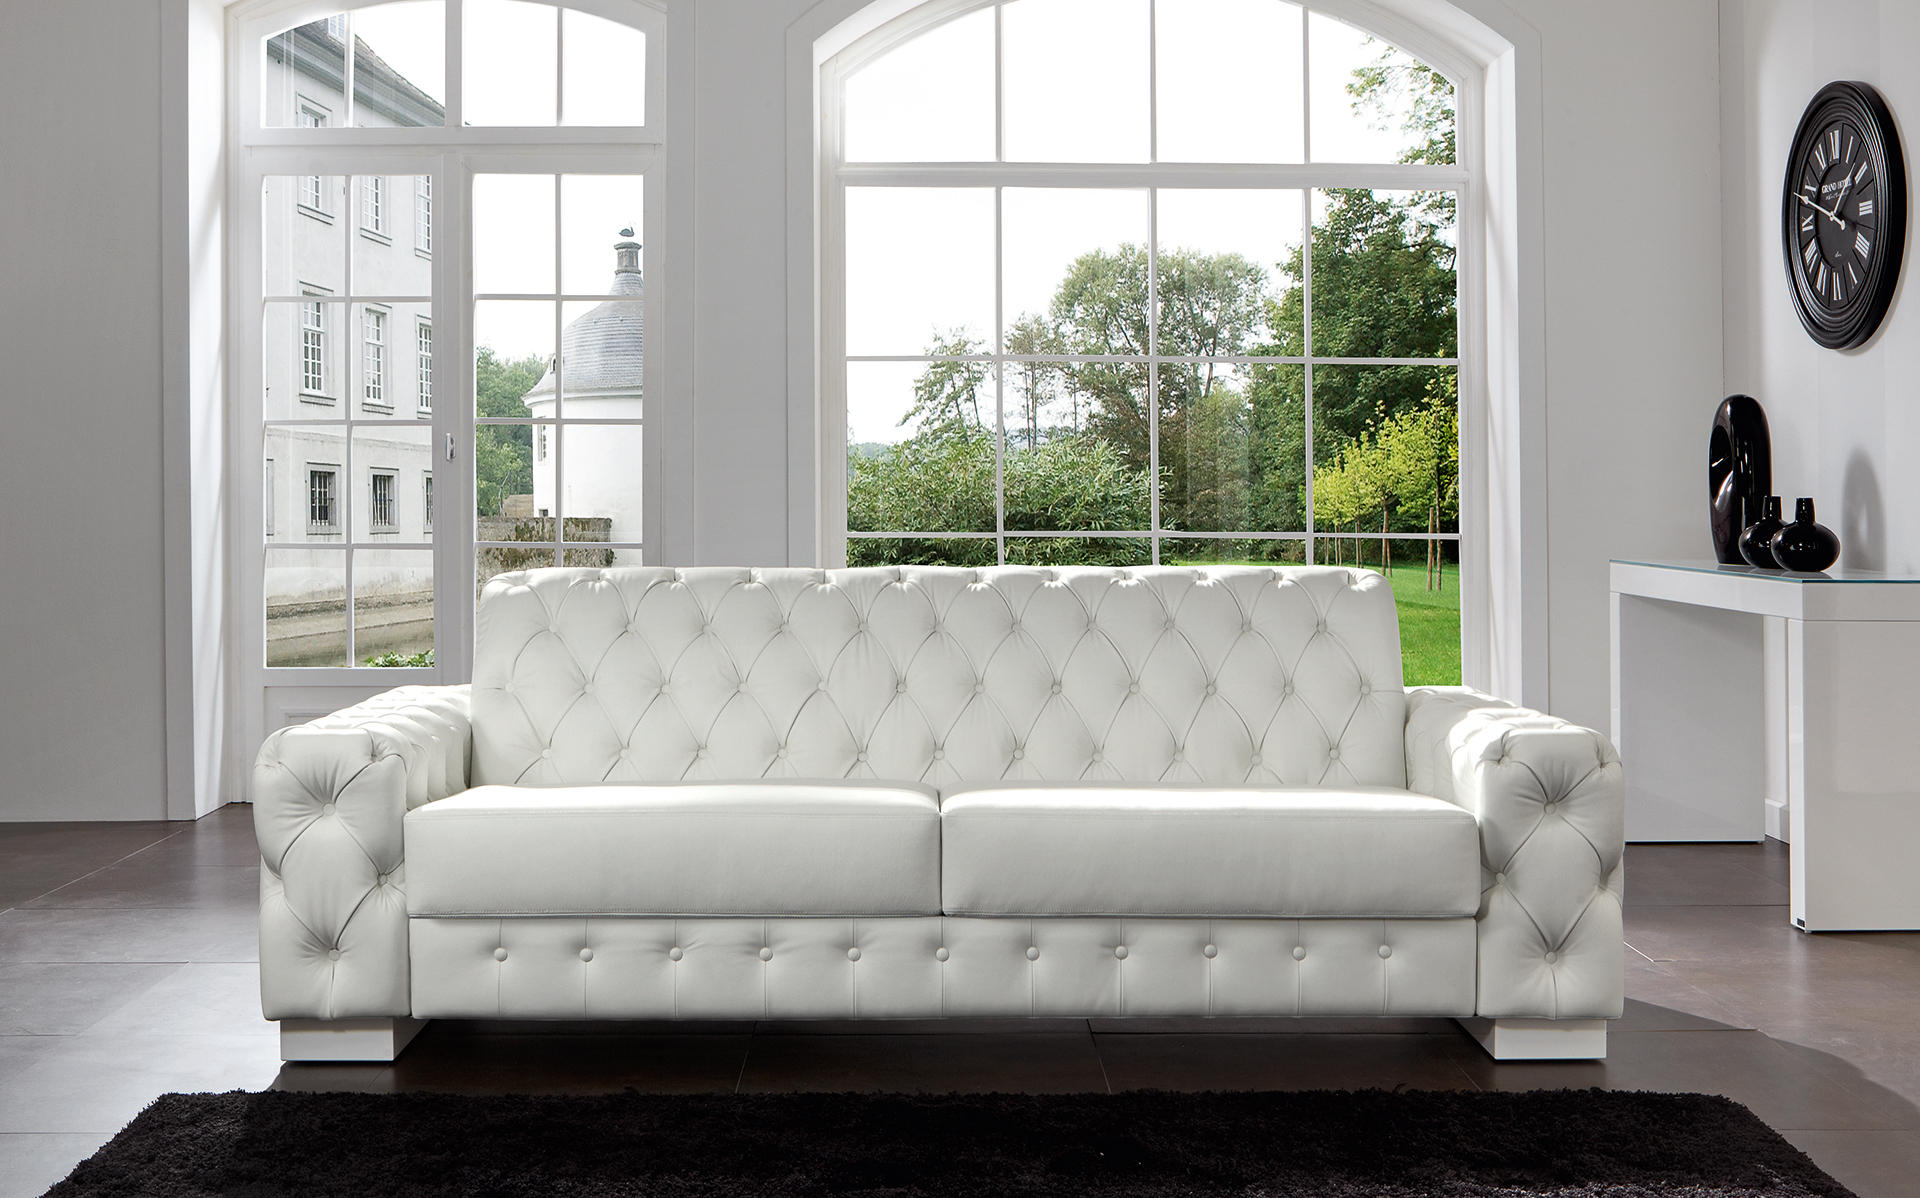 Chesterfield Sofas Melbourne Chesterfield Sofa Baltimore | Finkeldei Polstermöbelmanufaktur